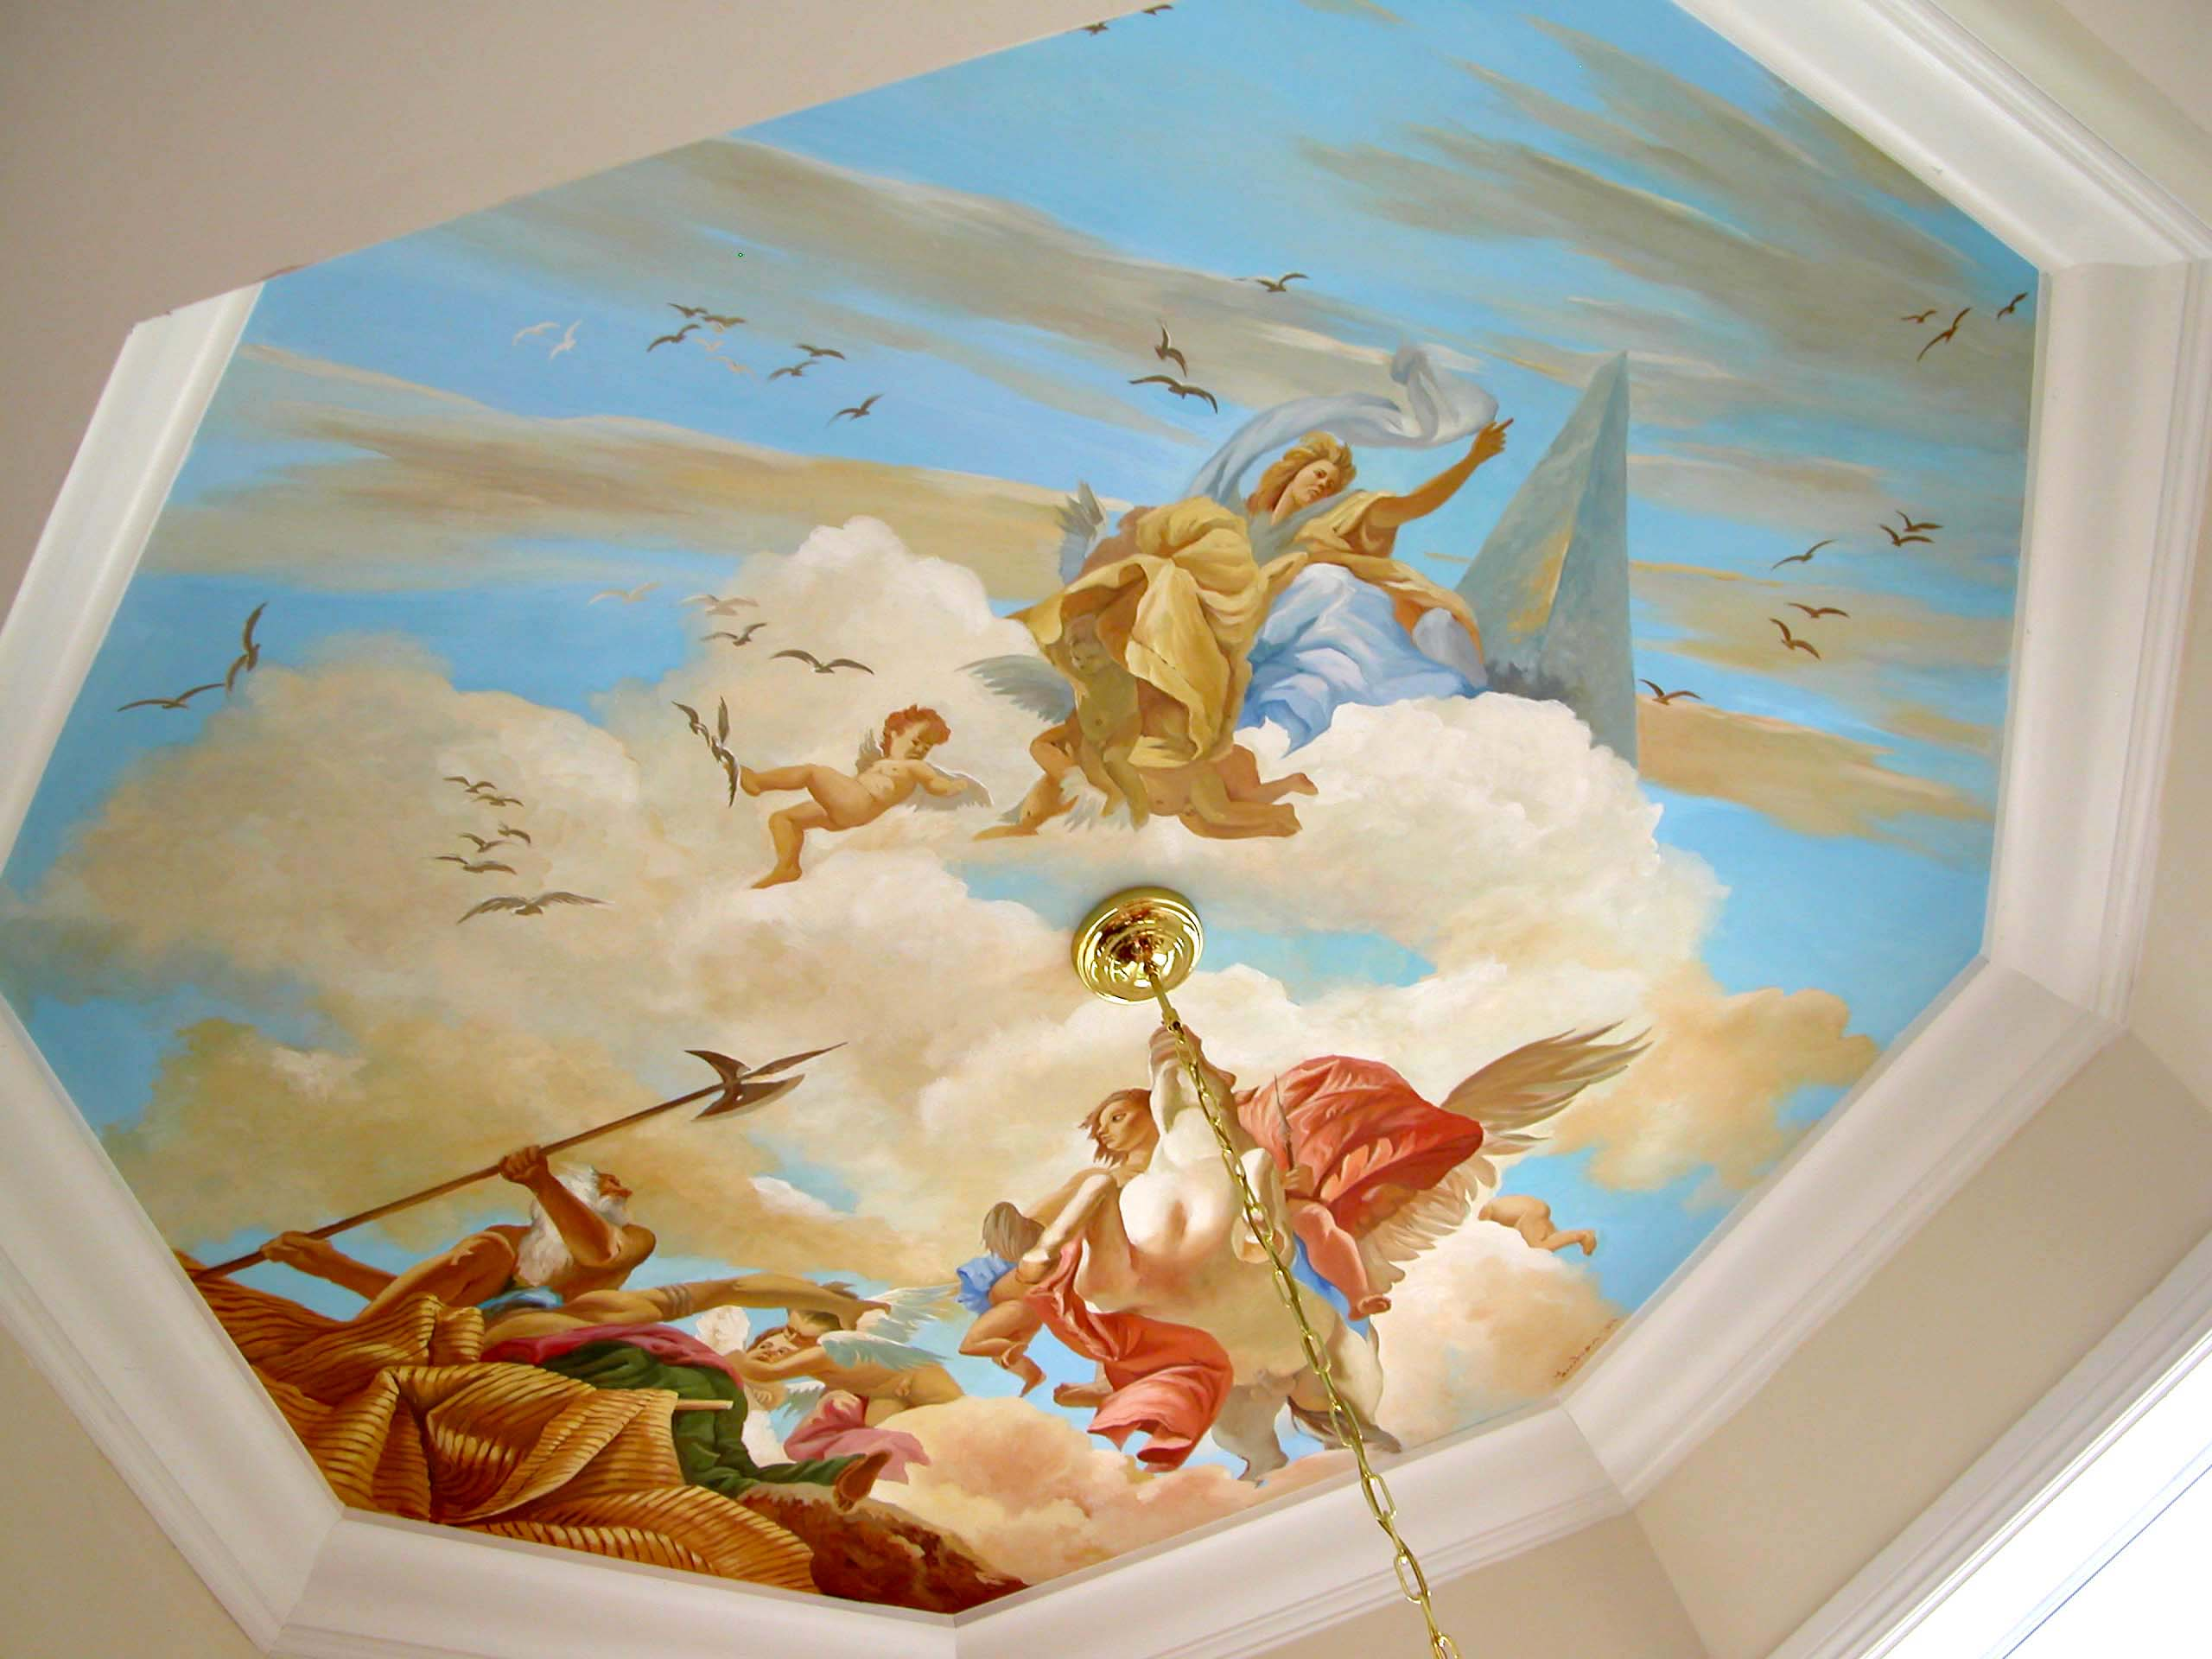 Design Ceiling Mural residential mural inspired by tiepolo ceiling fort in trompe loeil on baroque artists tiepolo